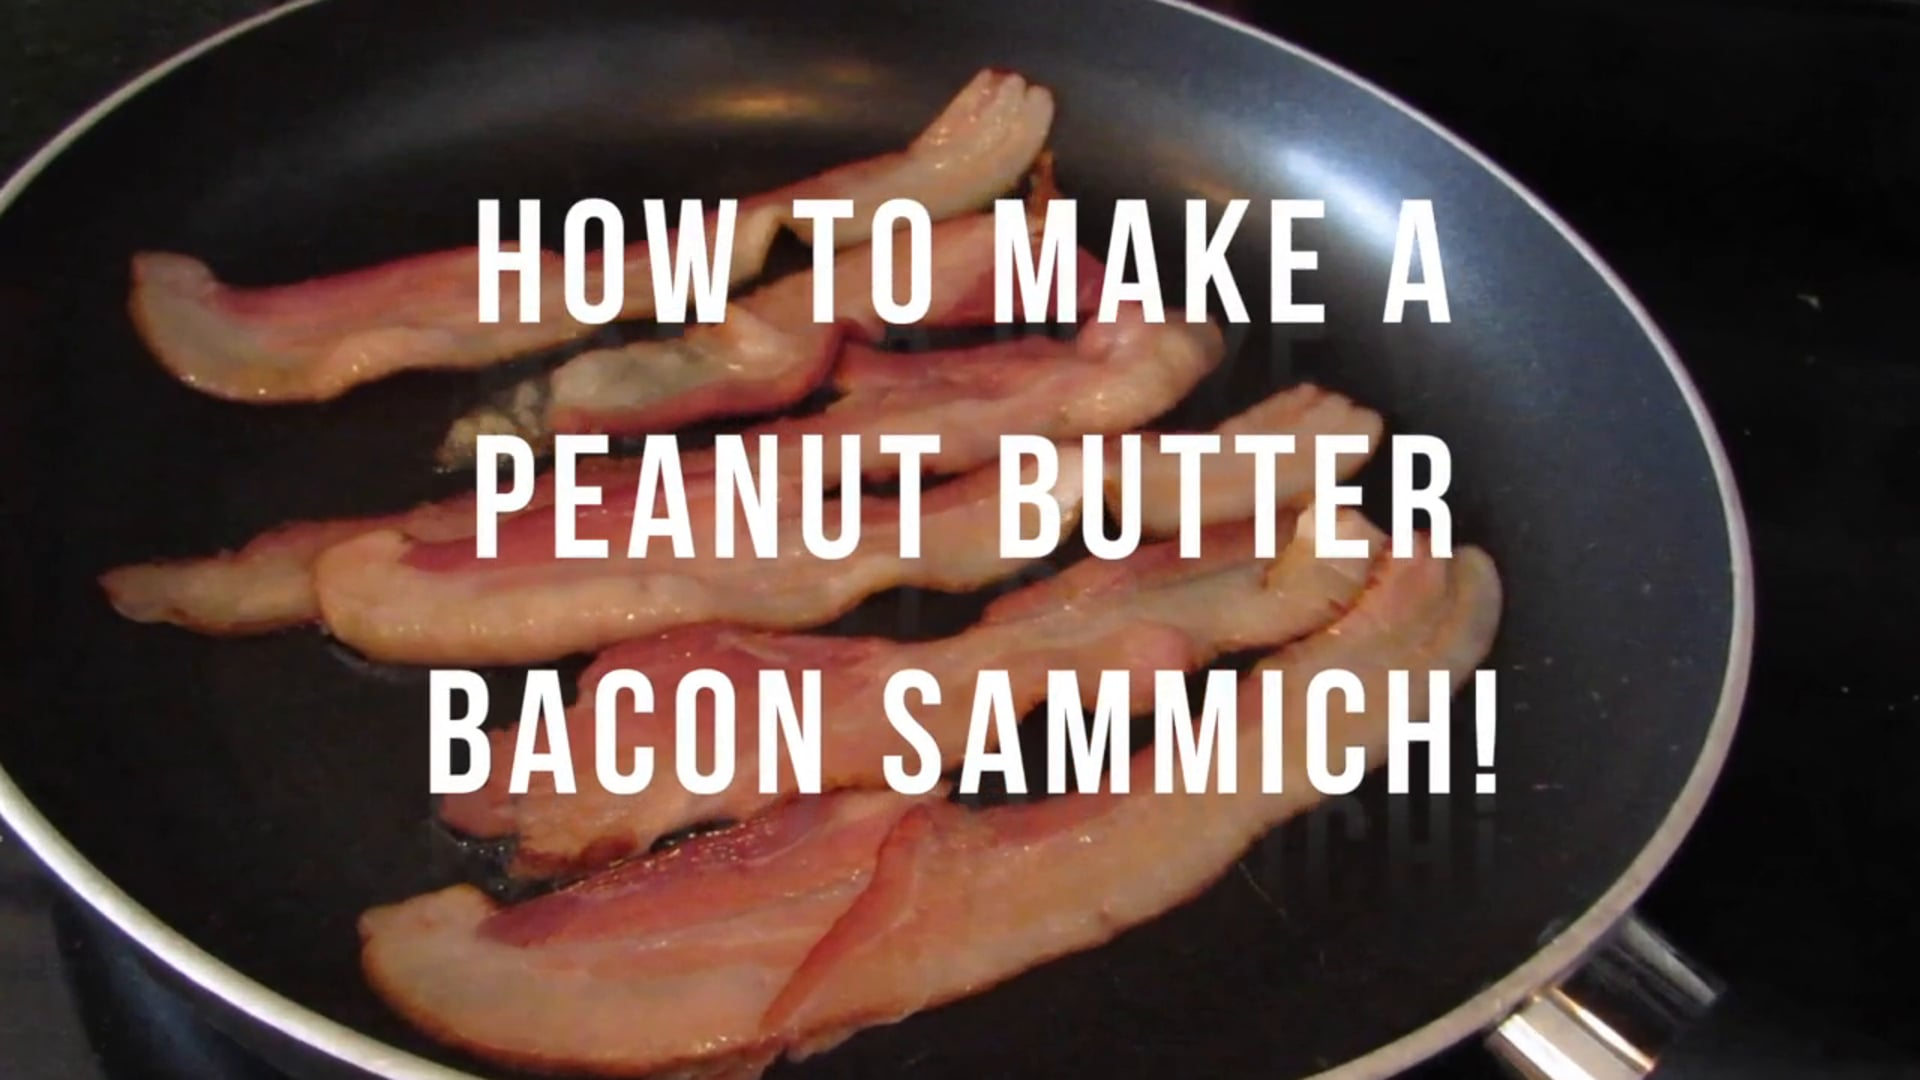 How To Make A Peanut Butter & Bacon Sammich!